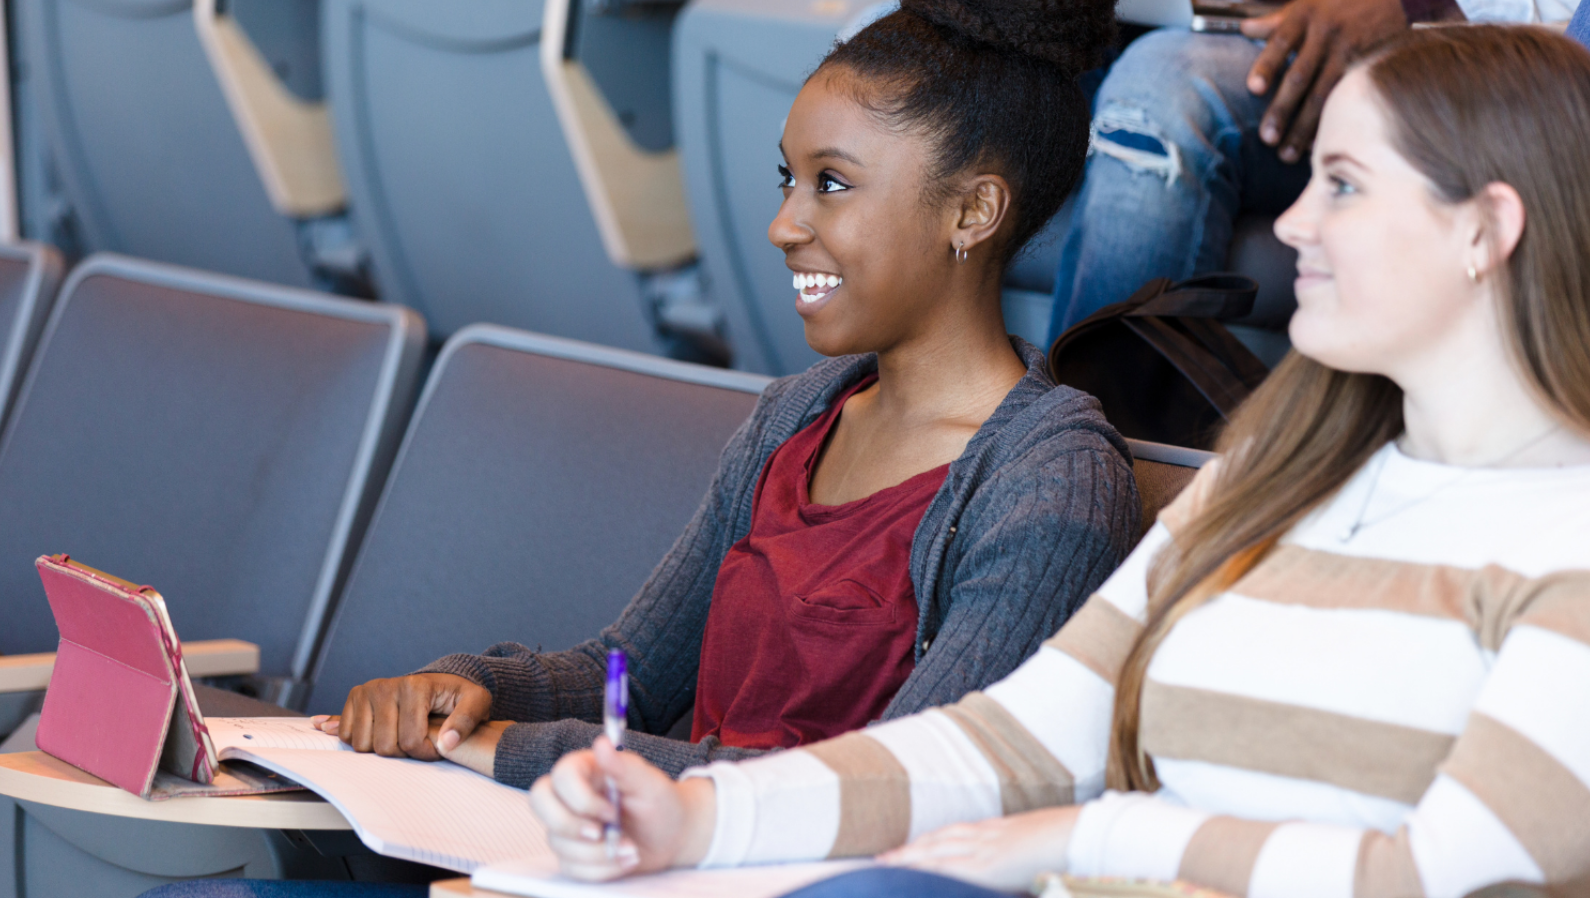 Two community college students sit side-by-side in a lecture hall